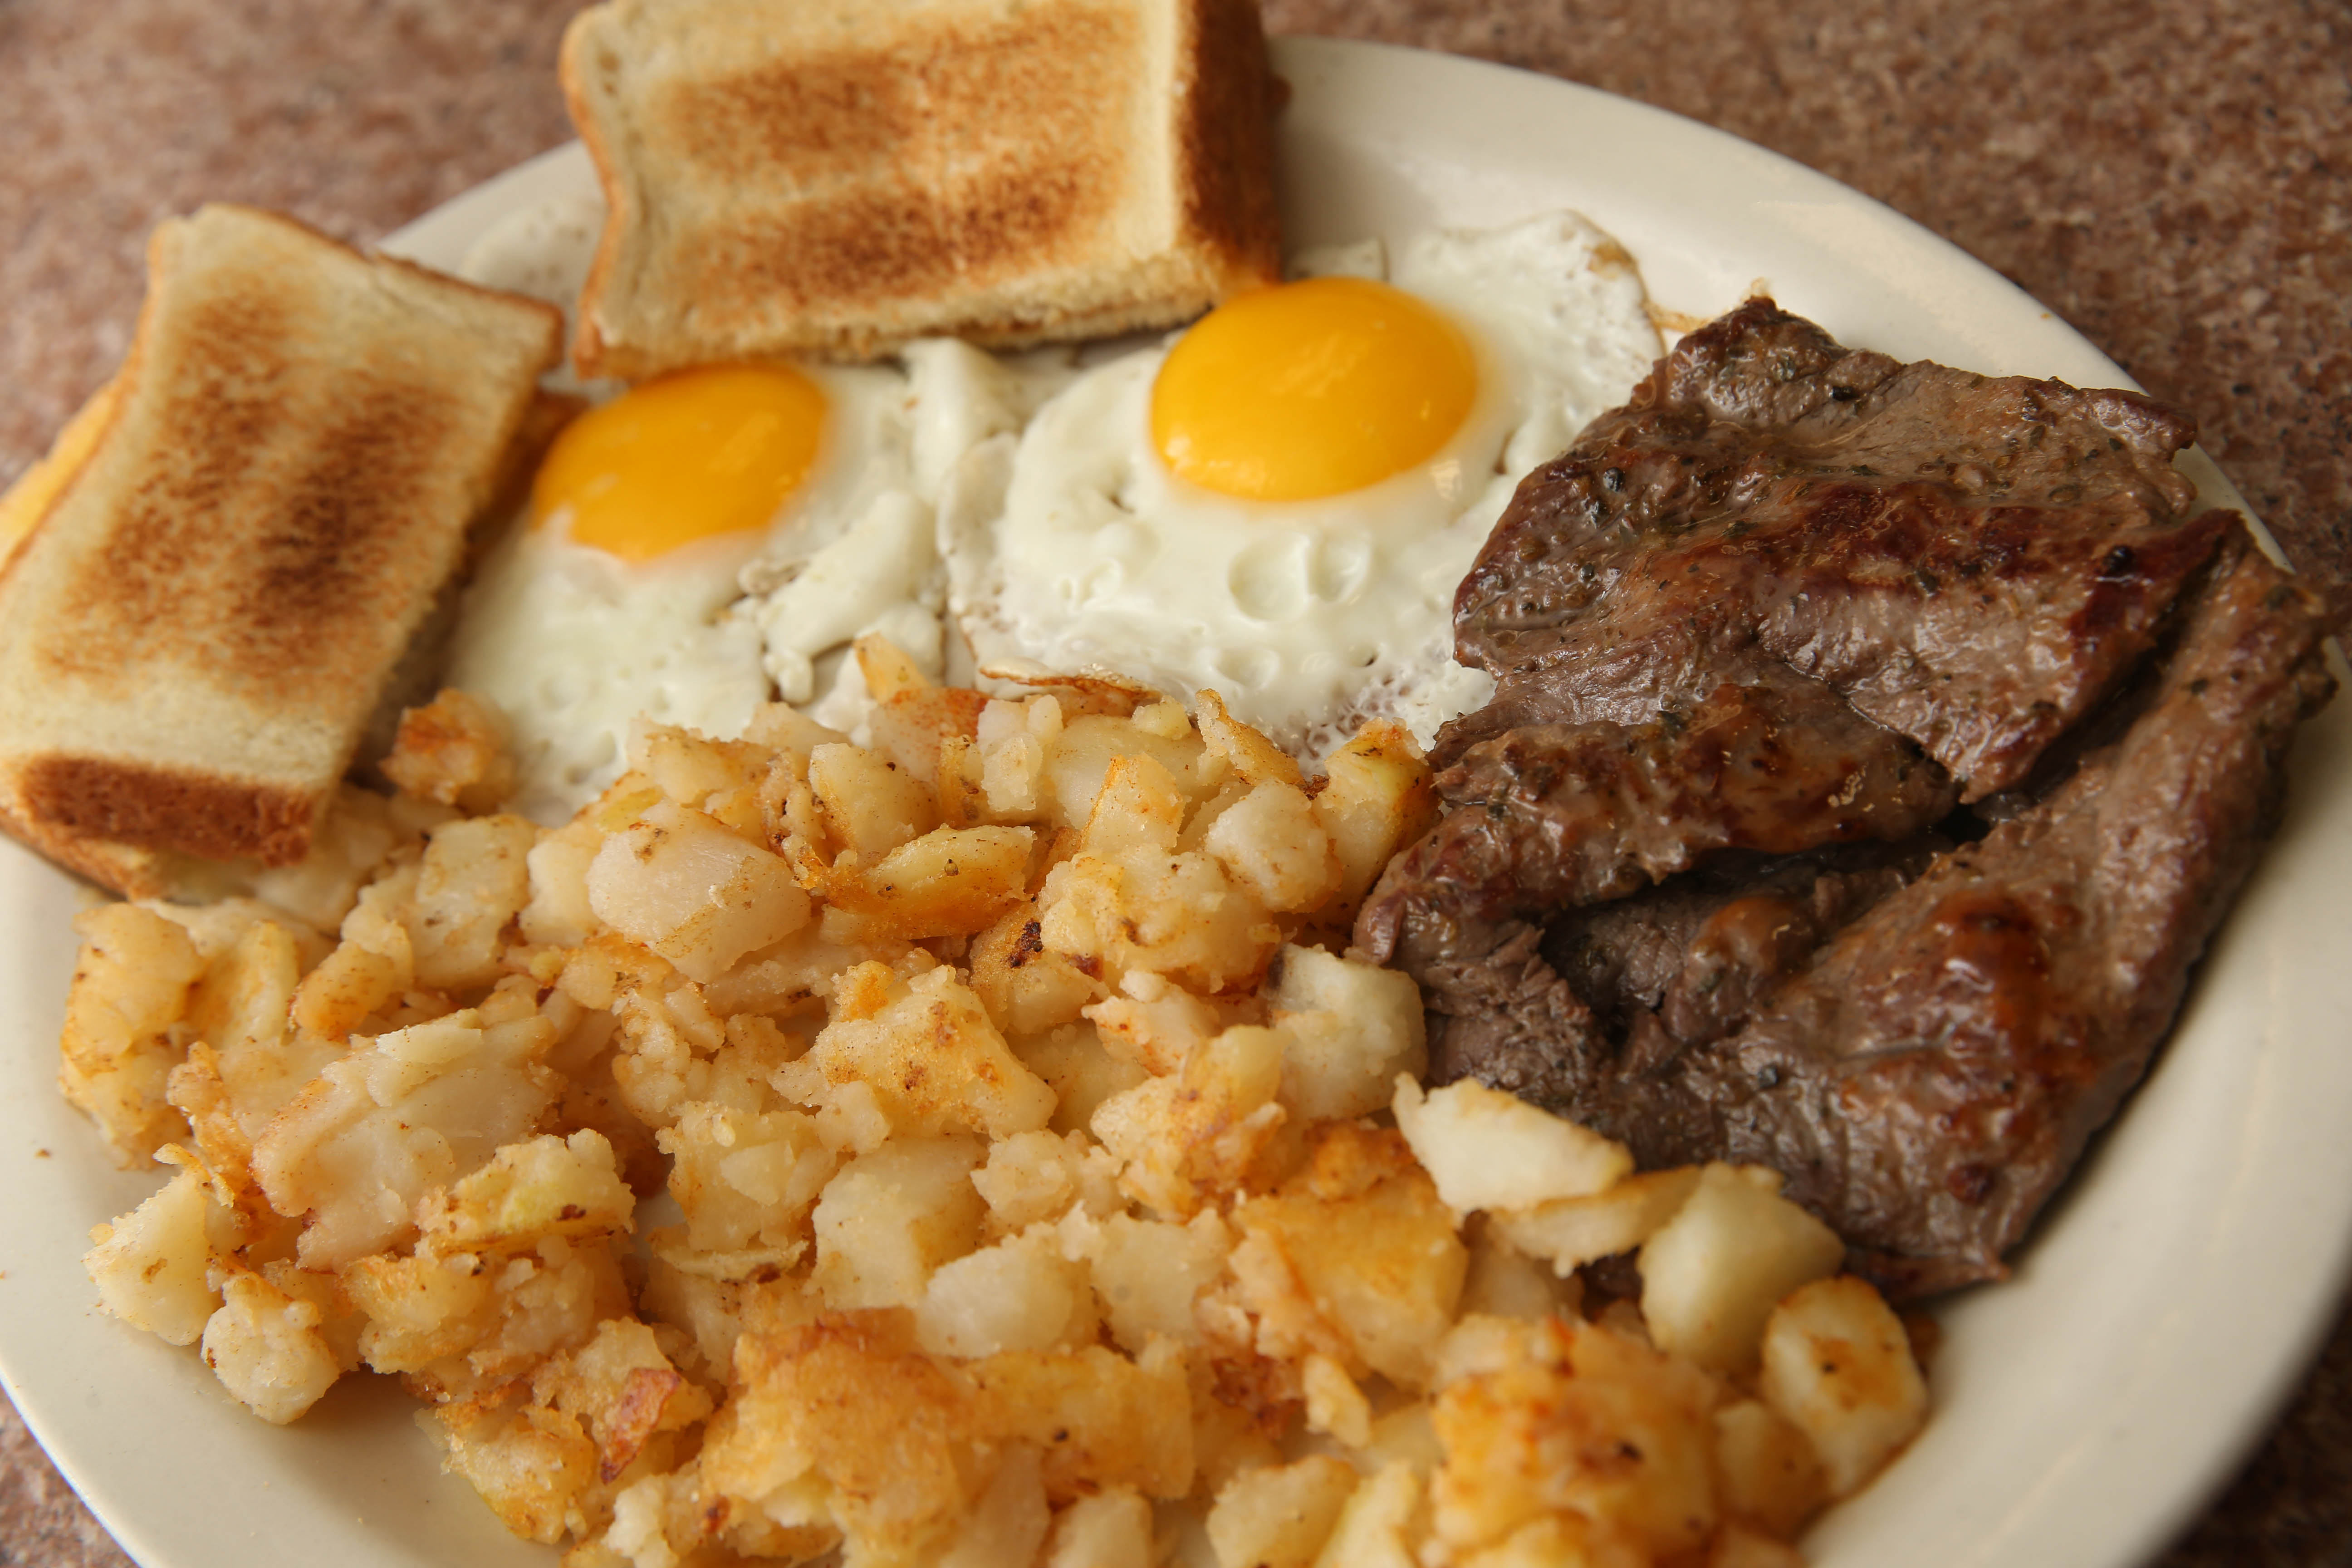 Steak and eggs with homefries and toast is ono of the popular dishes at Lucky's Texas Hots. (Sharon Cantillon/Buffalo News)